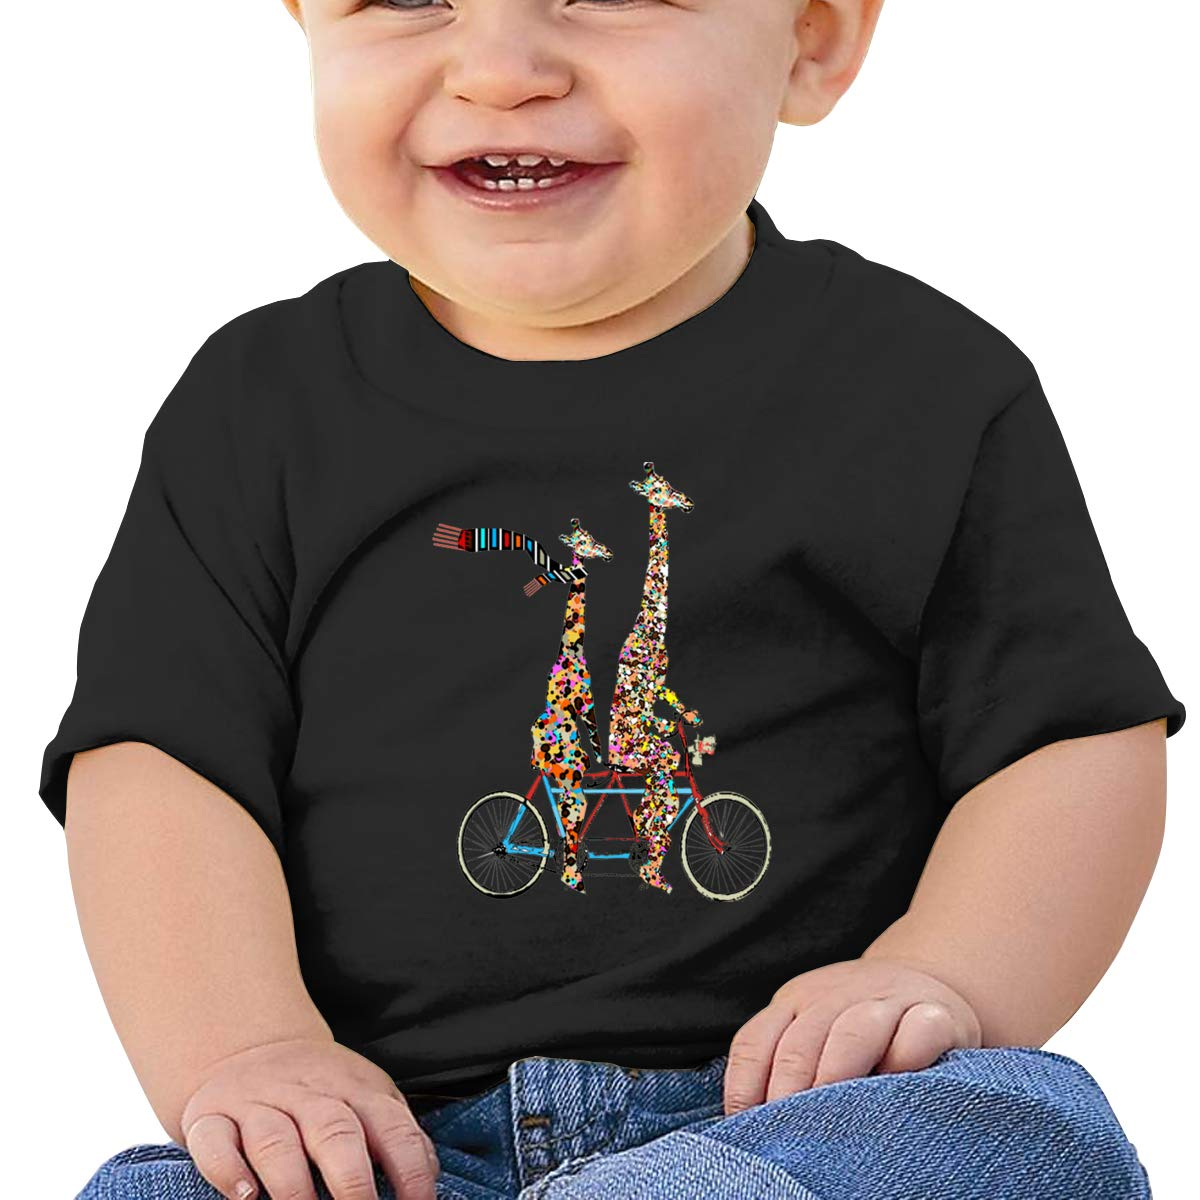 JVNSS Giraffes Riding Bike Baby T-Shirt Toddler Cotton T Shirts Comfort Basic Shirt for 6M-2T Baby